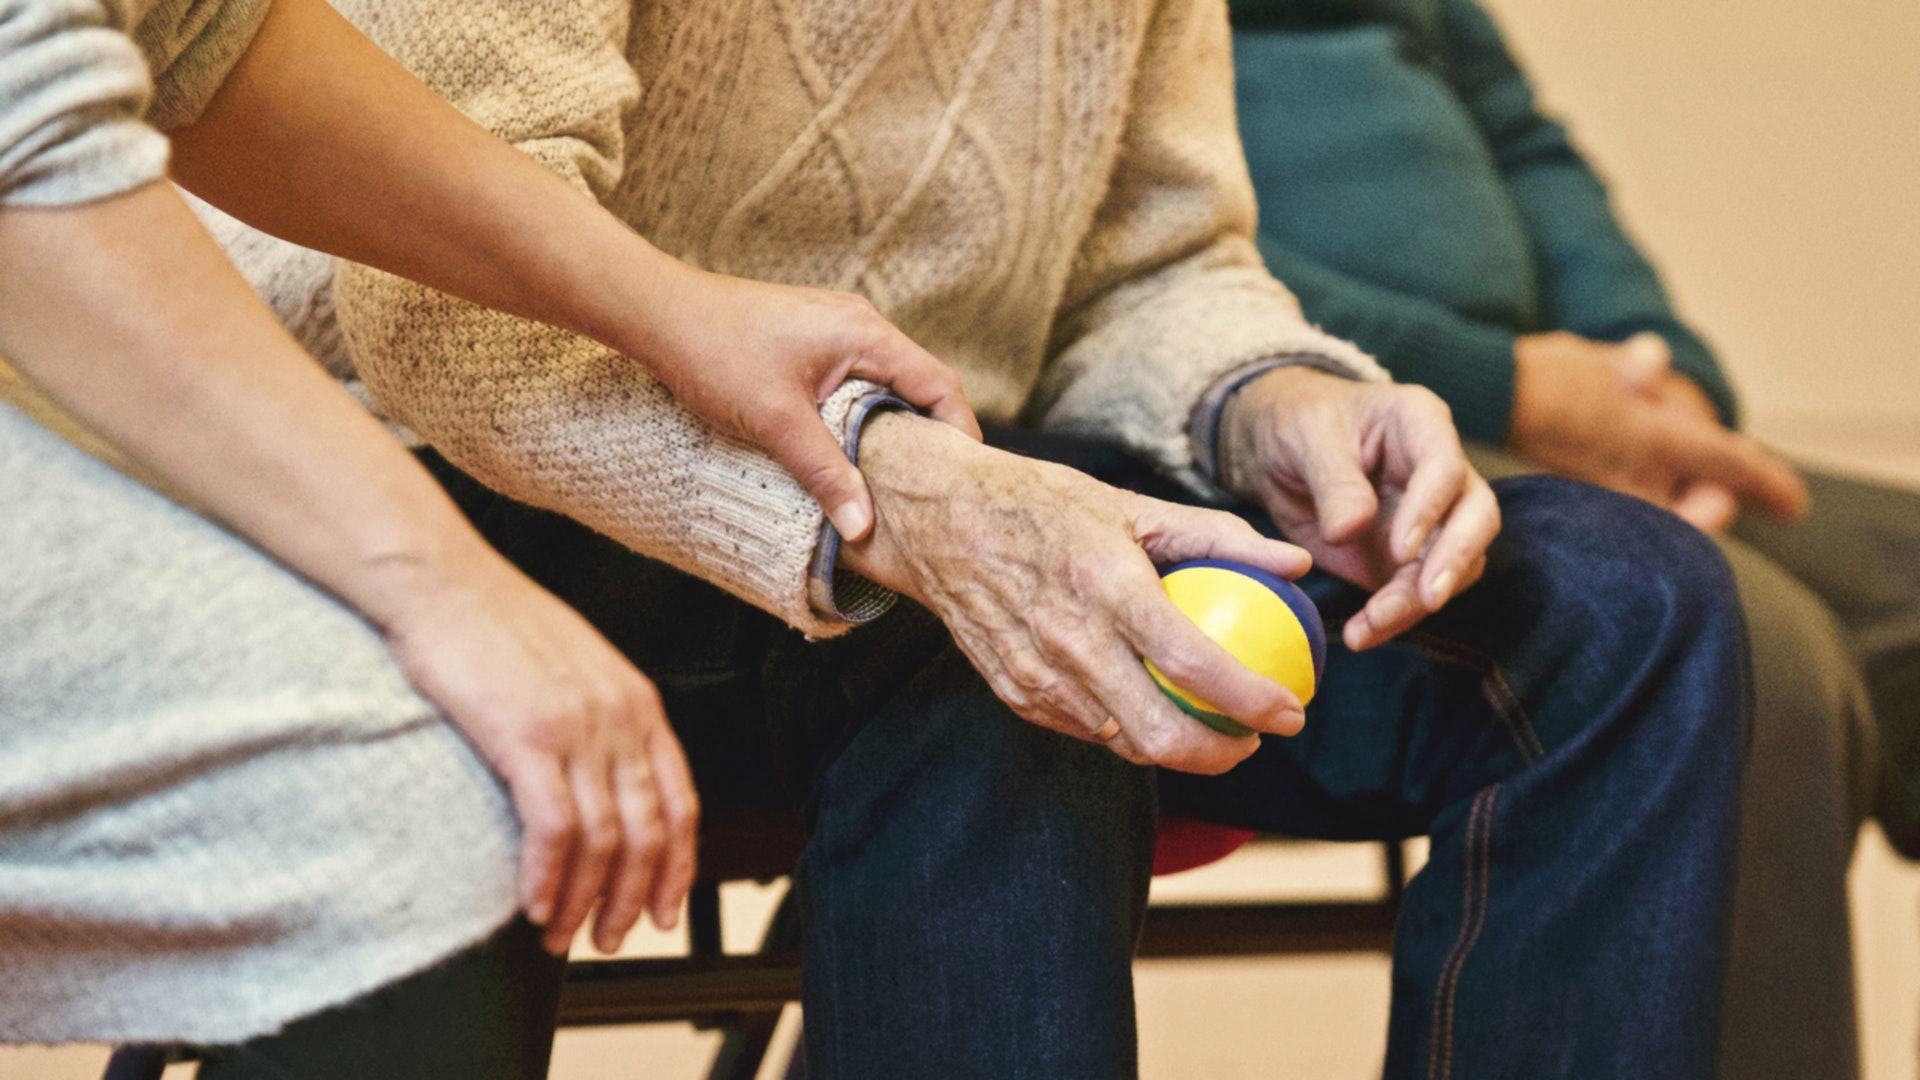 image of care worker helping elderly